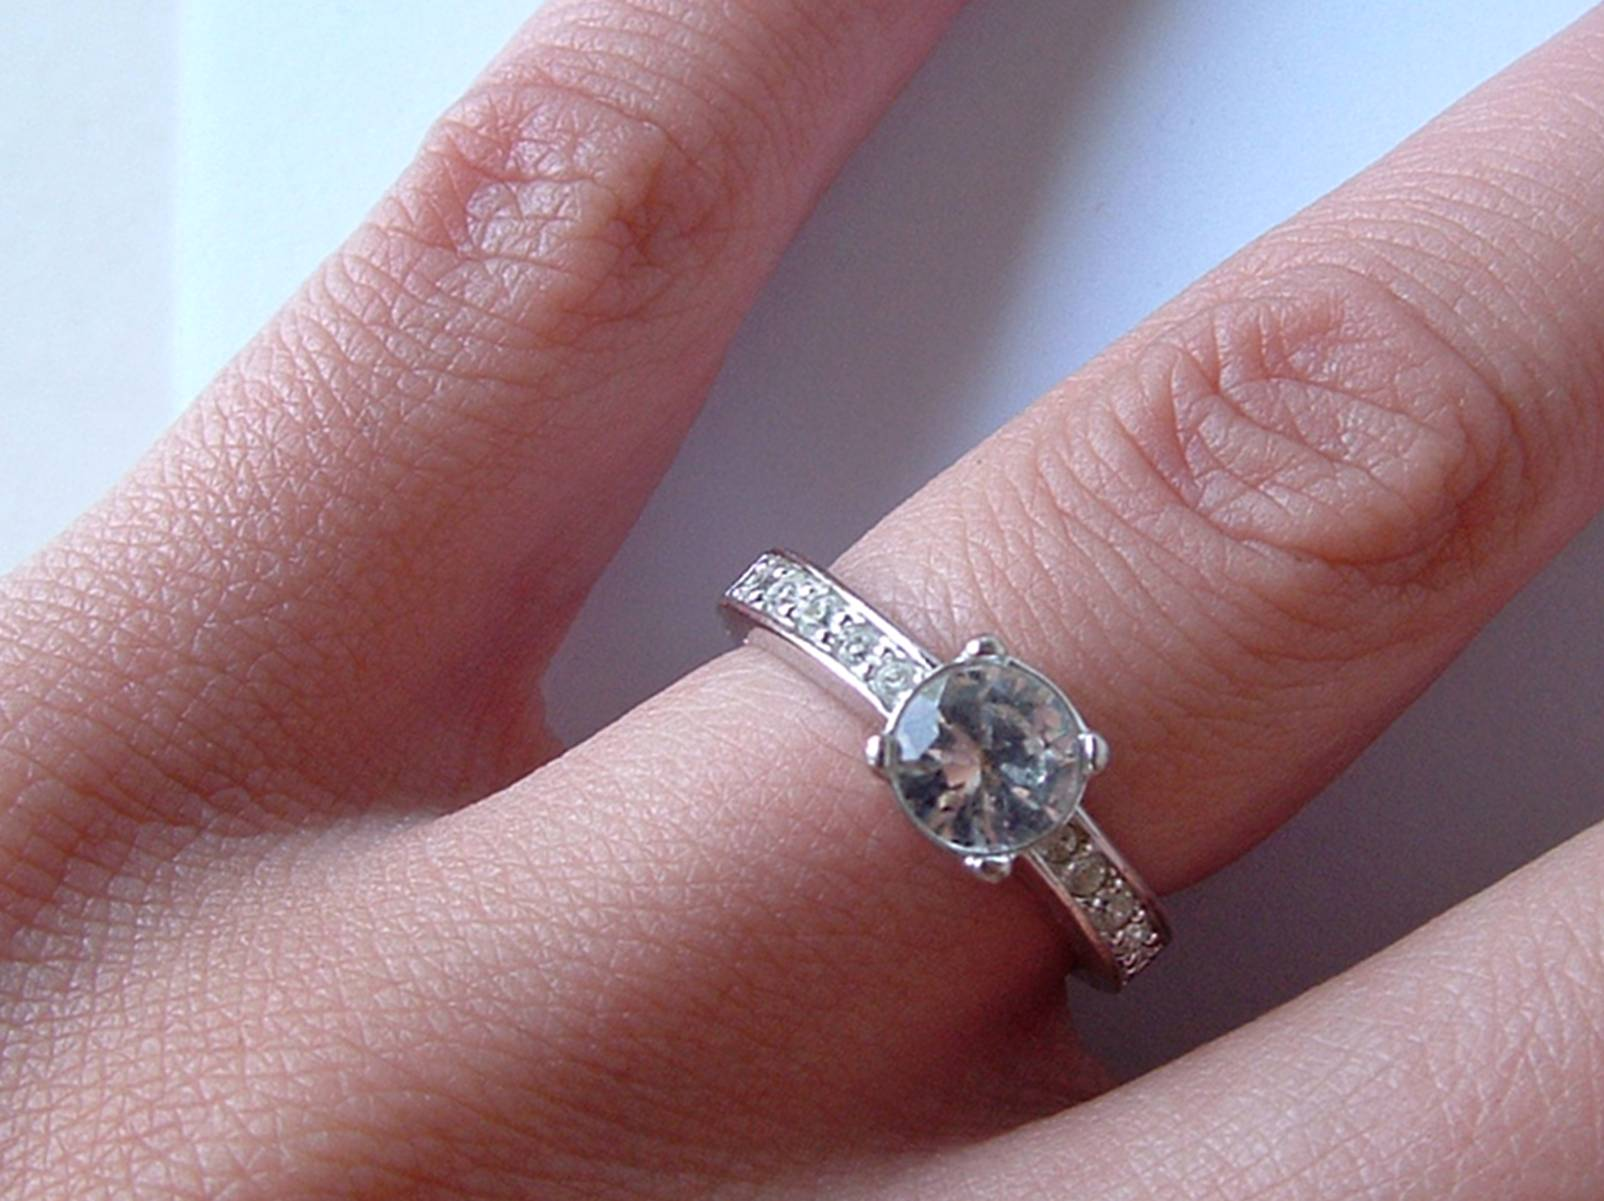 Because Diamonds Are Valuable They Should Be Scheduled Separately Onto An Insurance Policy So That Re Covered